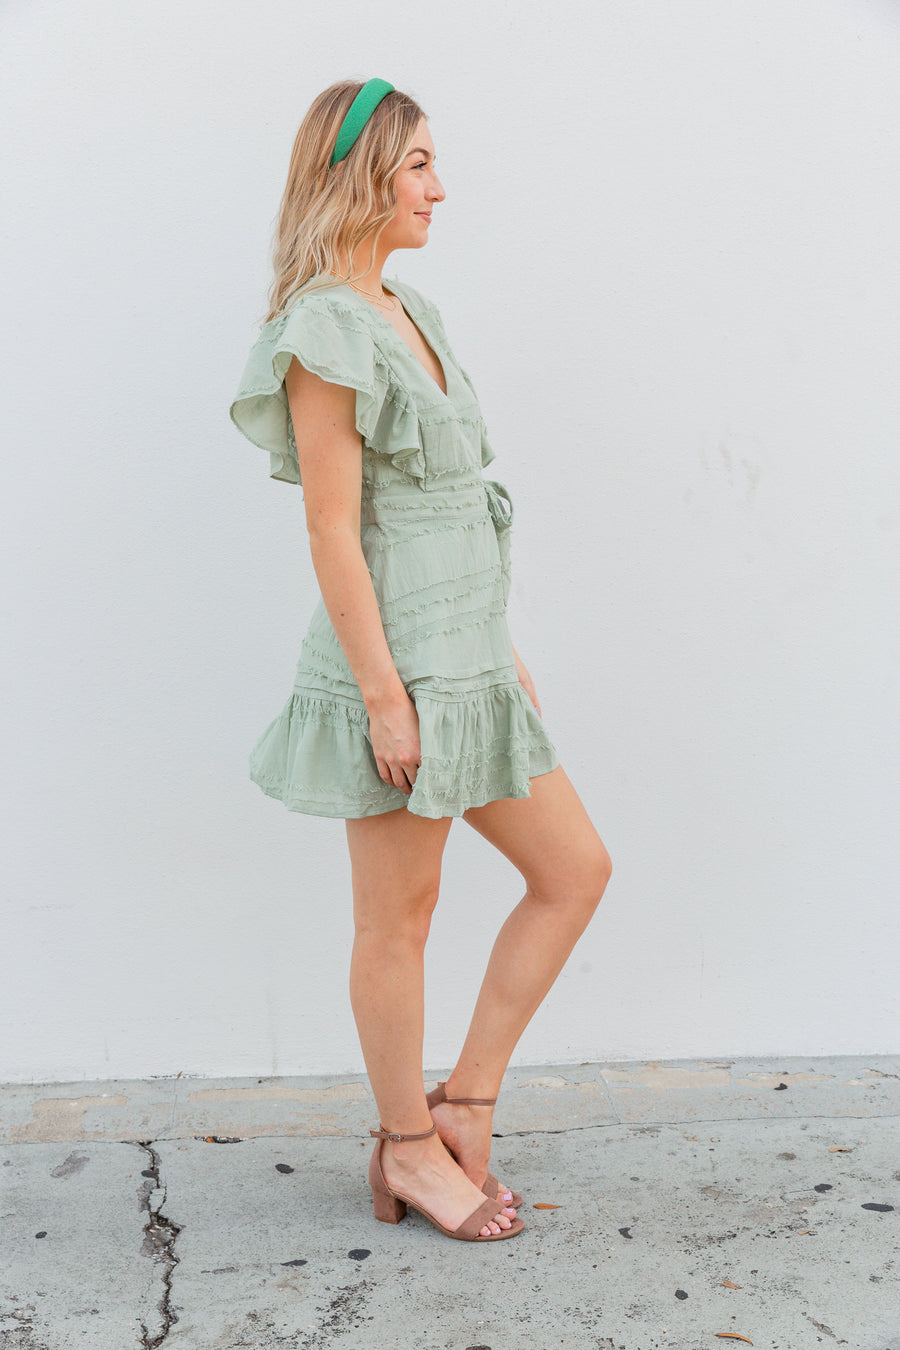 Small textured frays cover the fabric of this feminine dress. Short flutter sleeves attach to a surplice neckline and go into a ruffle-trimmed skirt panel with a side-tied waistline.